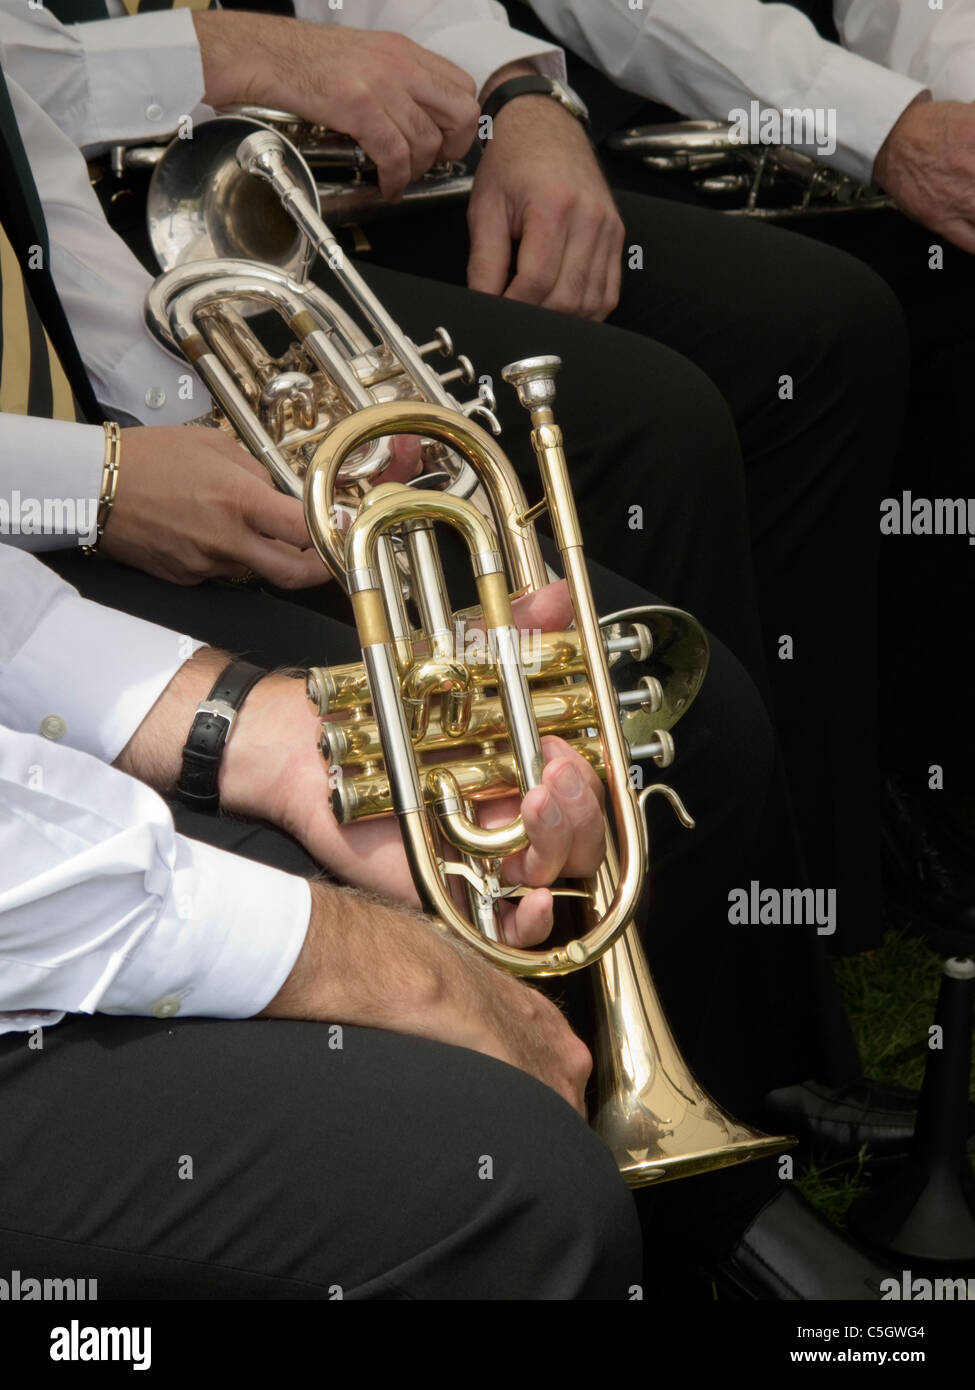 Trumpets in a Brass Band-1 - Stock Image